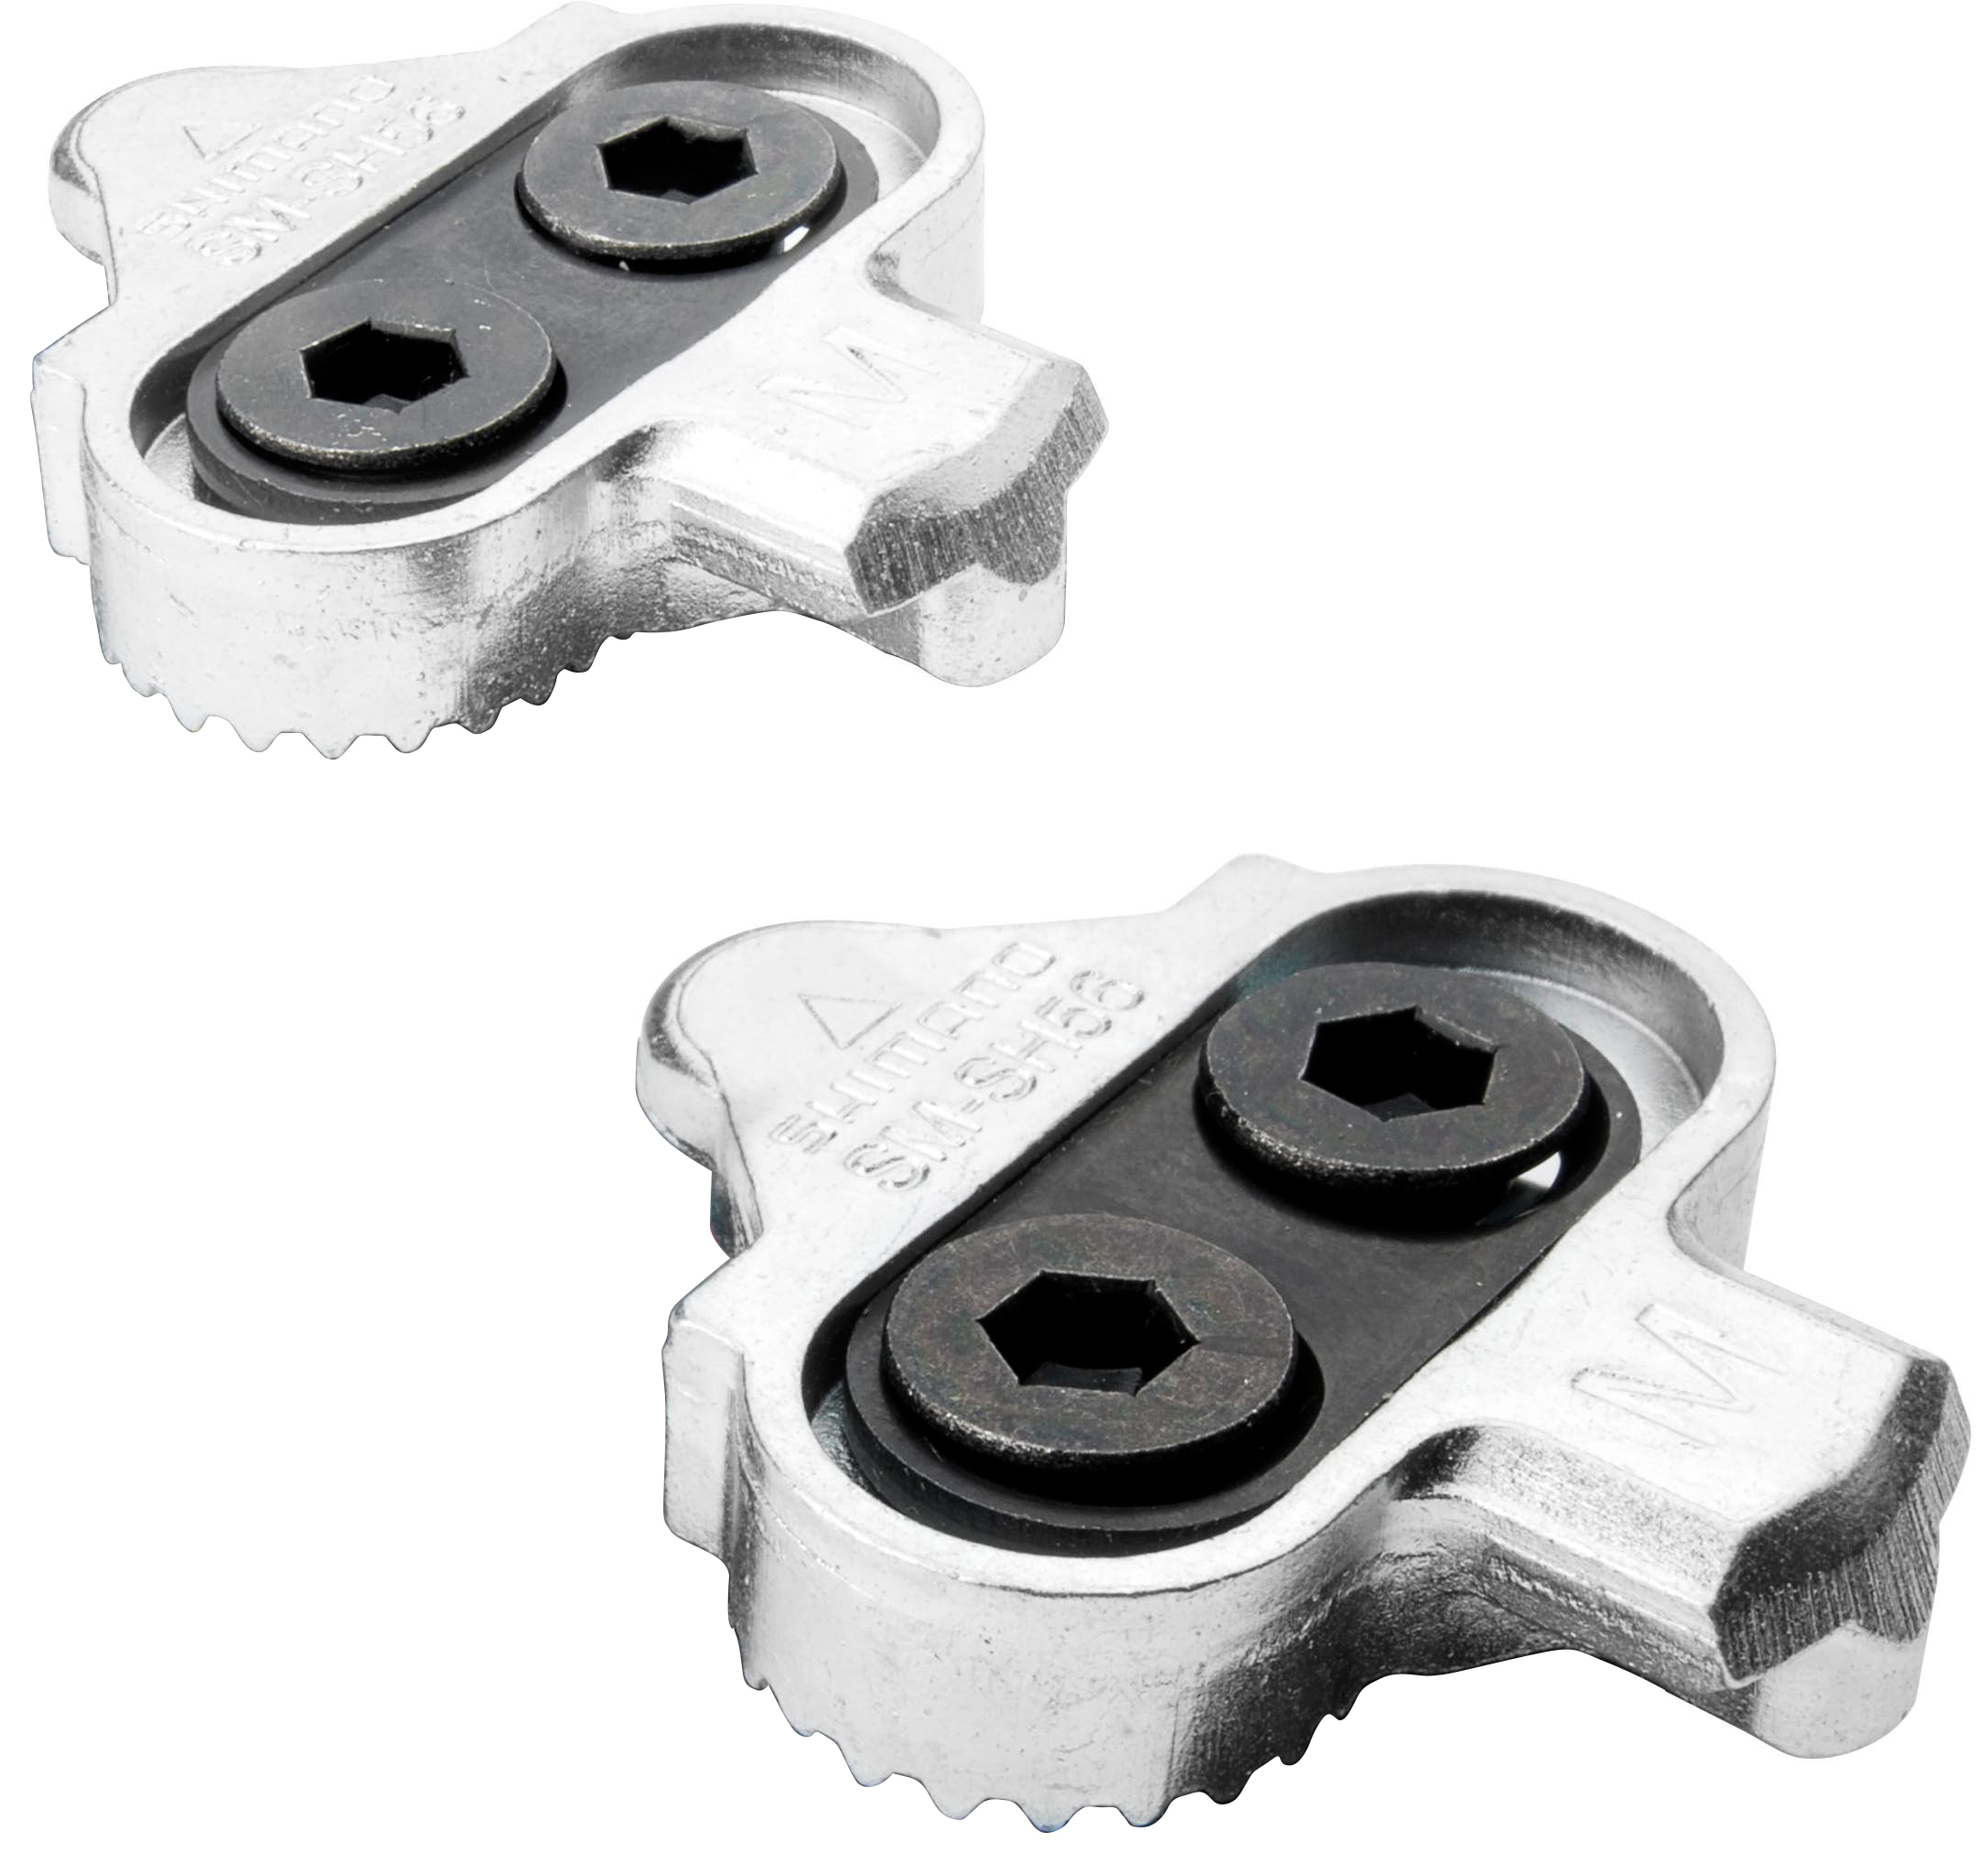 45e543f111a Bike pedals and cleats